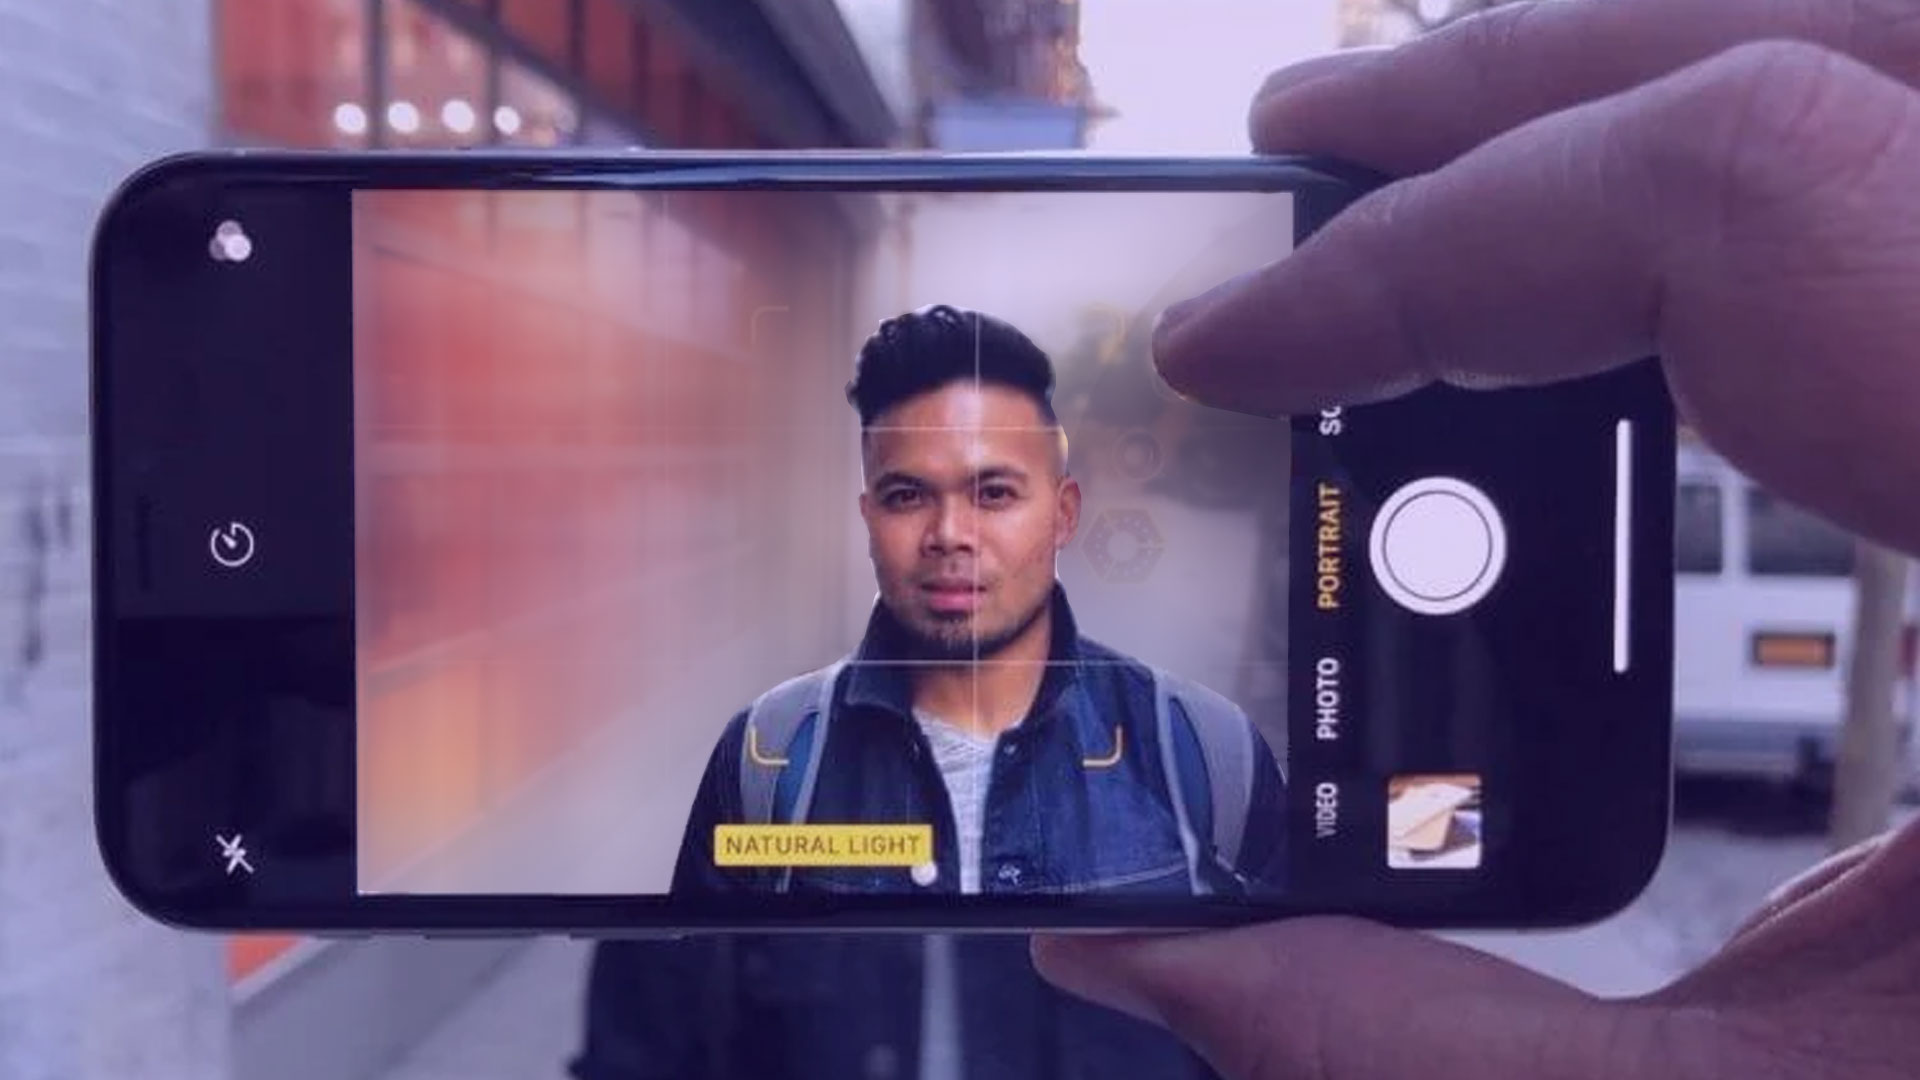 Blur Background Video Apps for iPhone